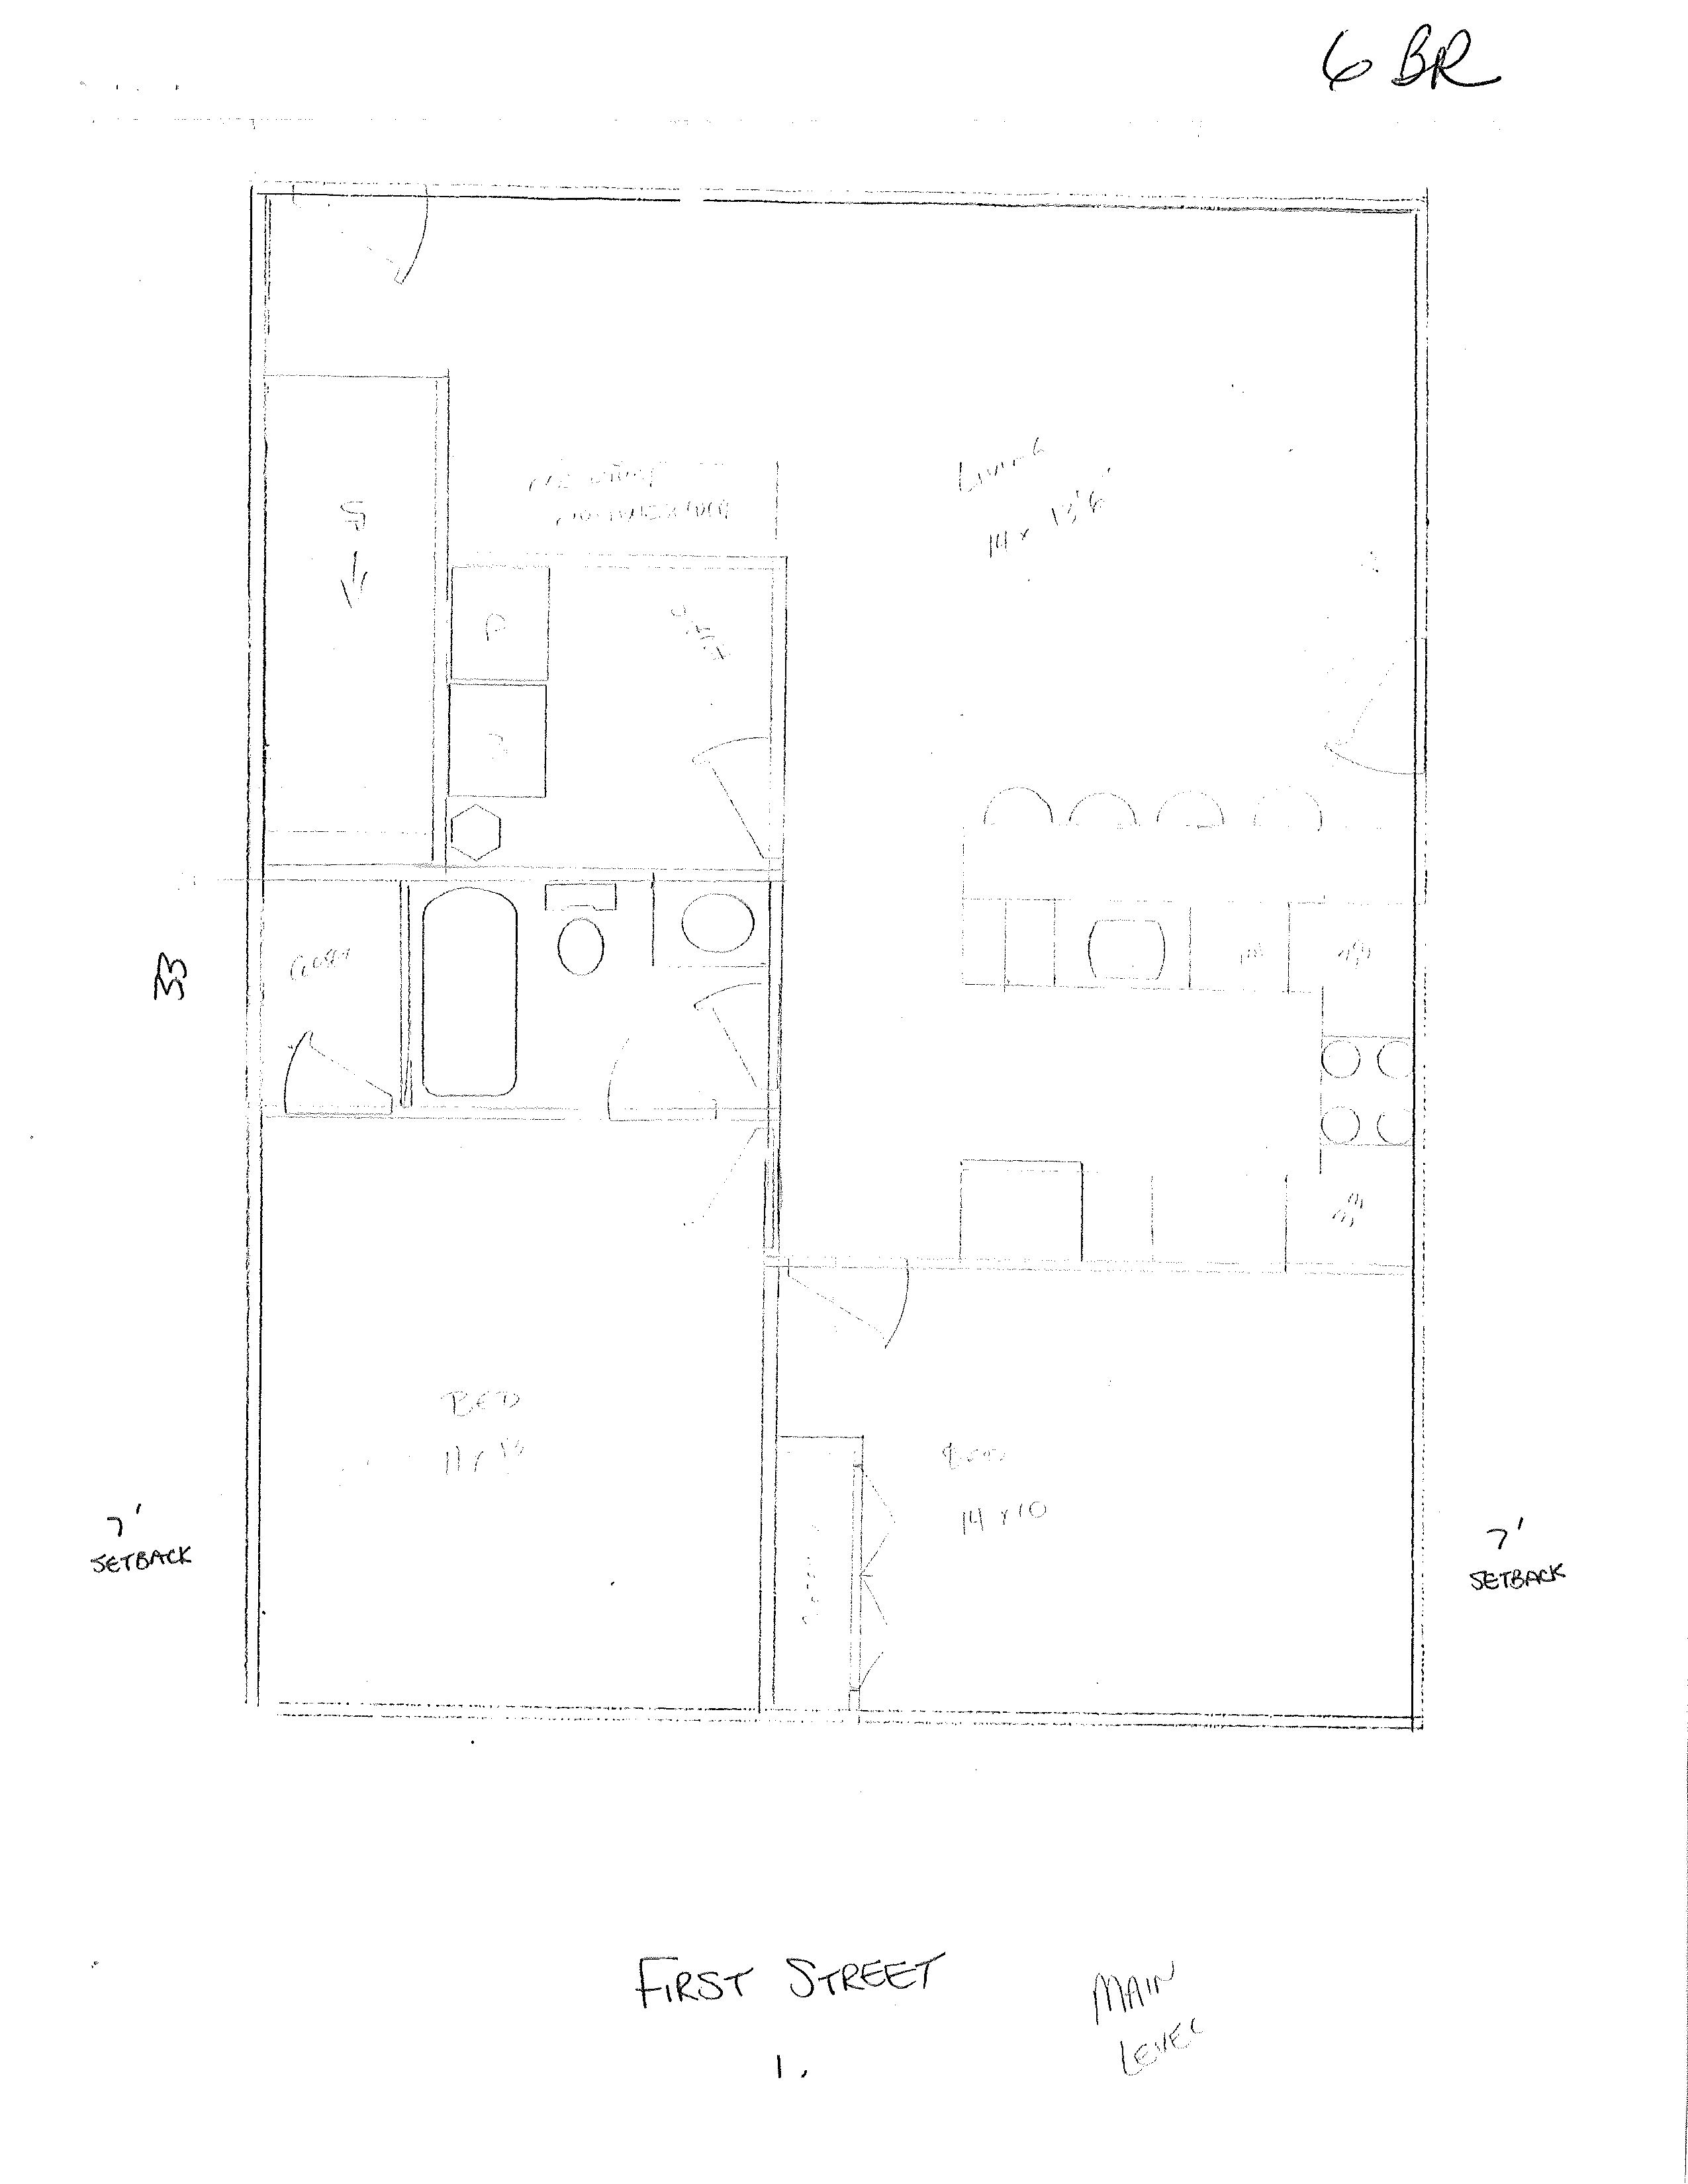 520 S. First St. Floor Plan